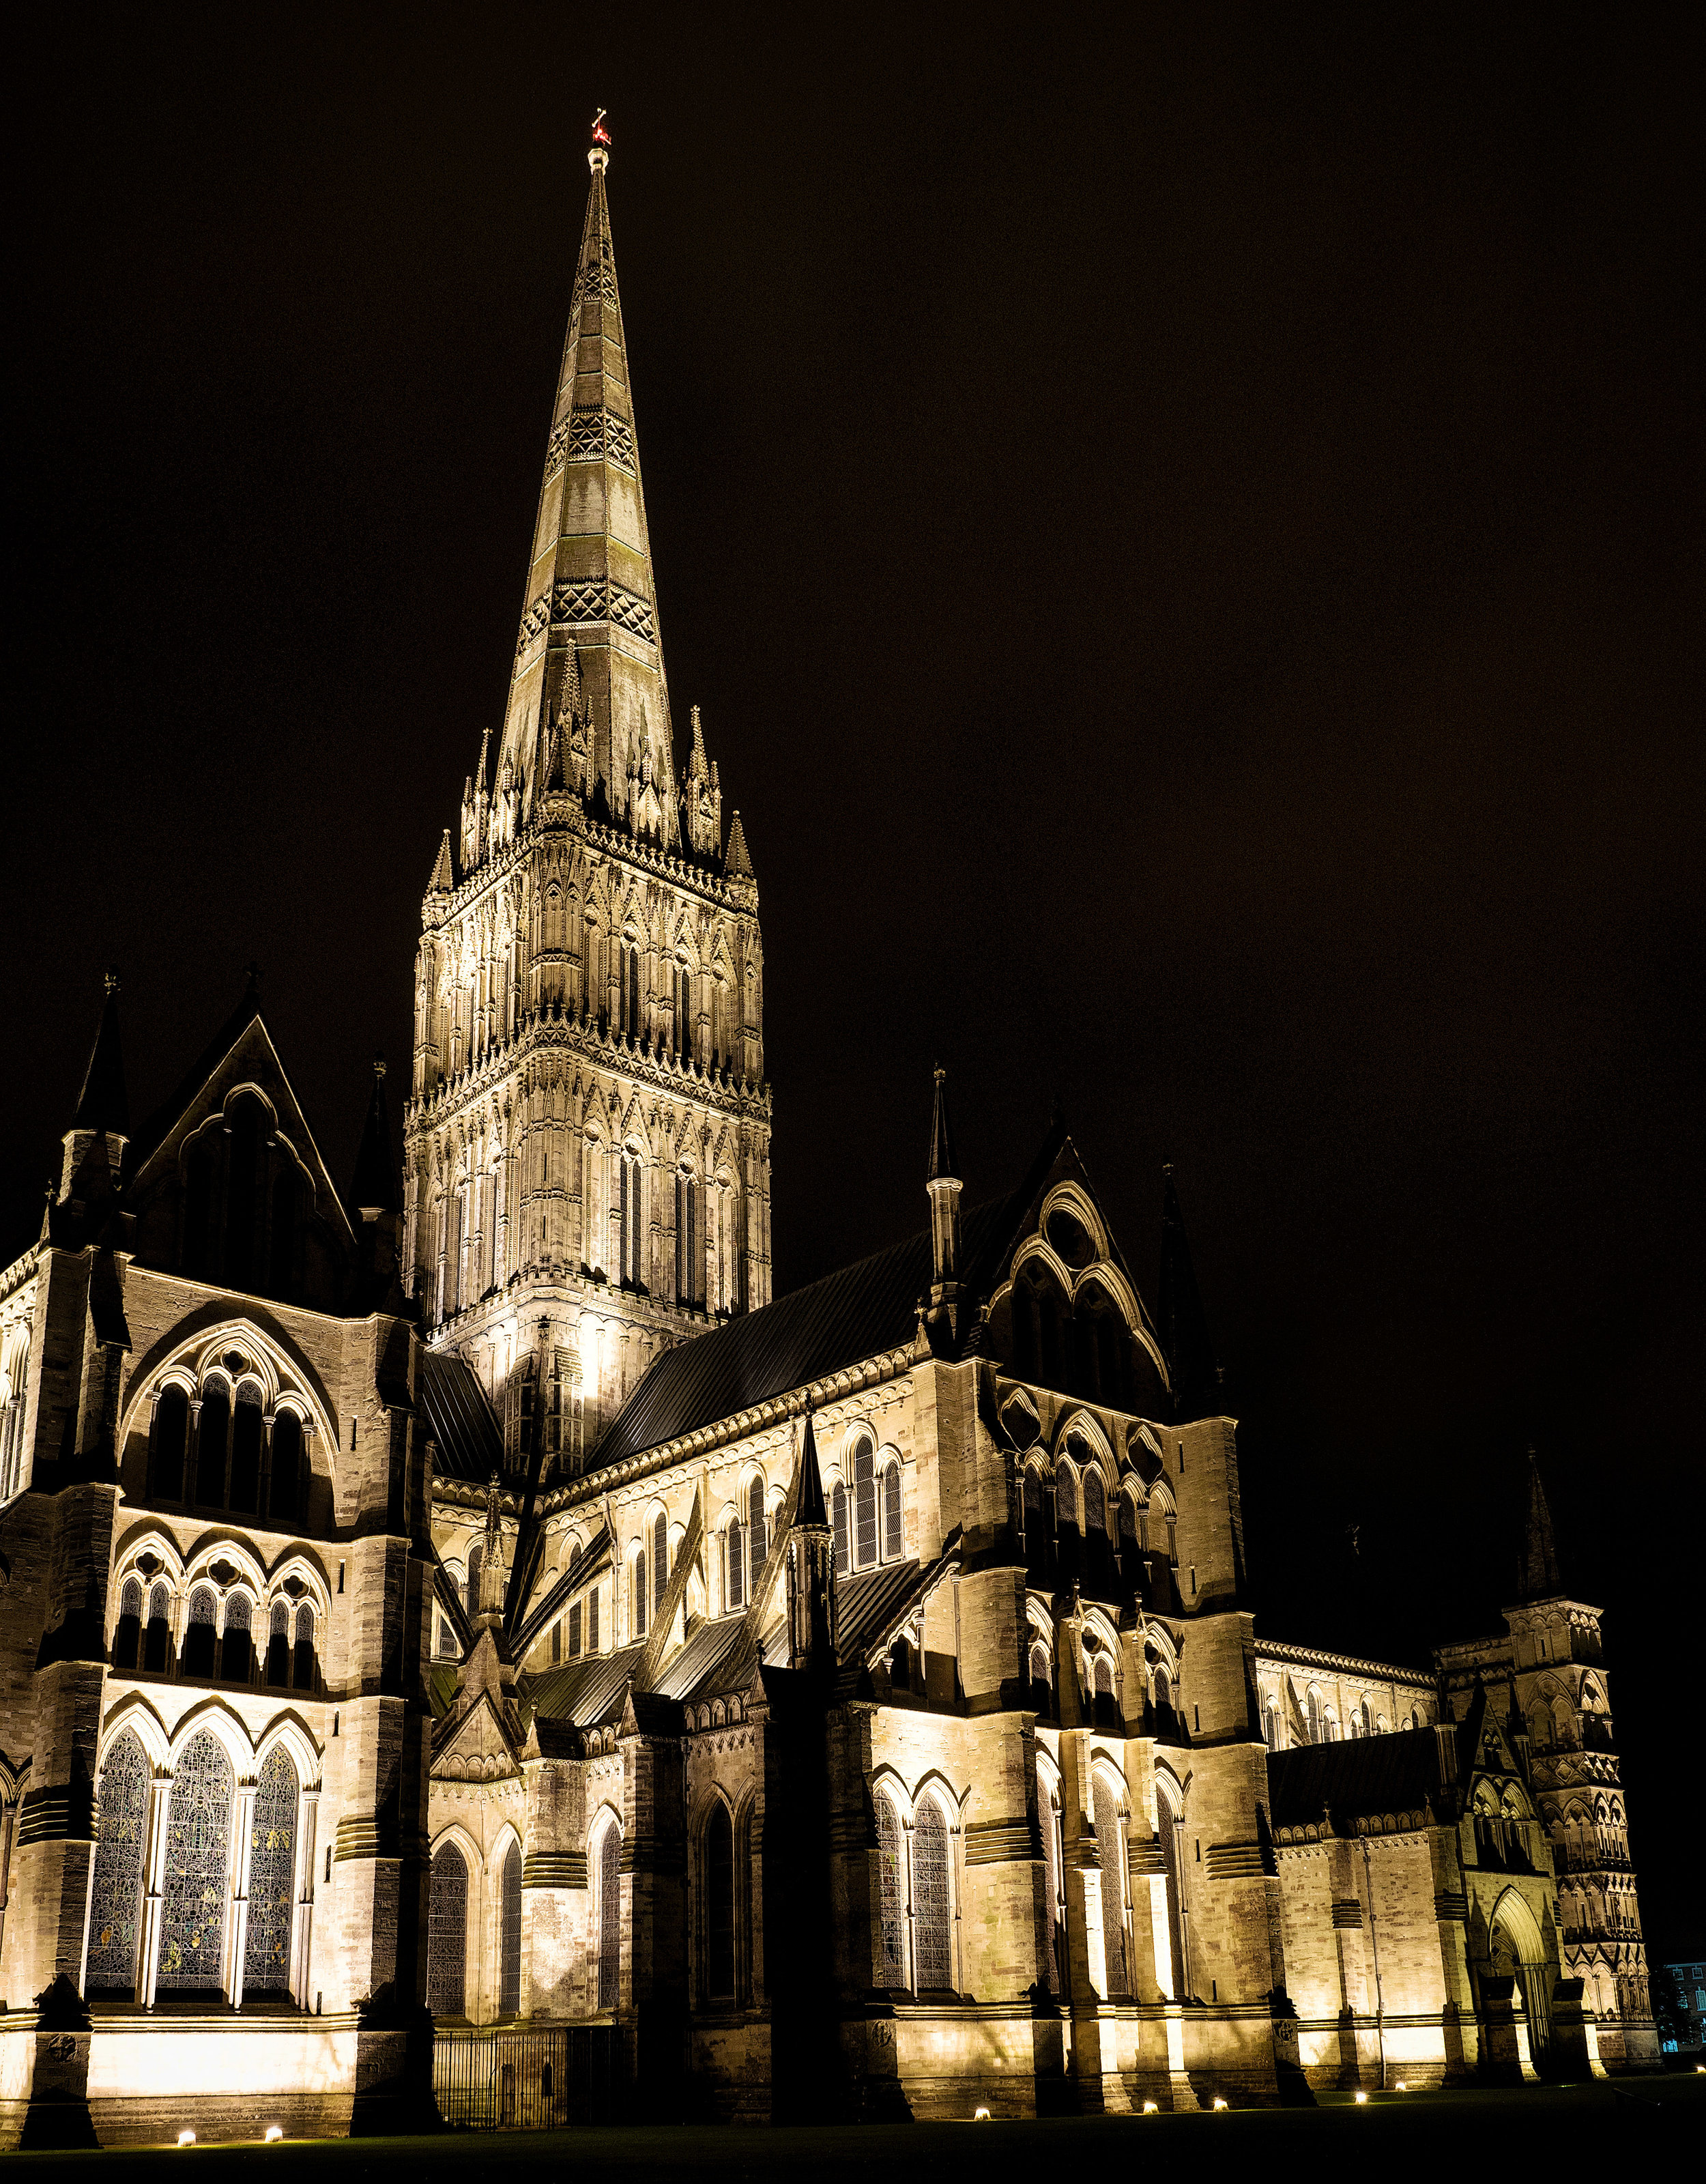 Salisbury Cathedral - England's tallest spire